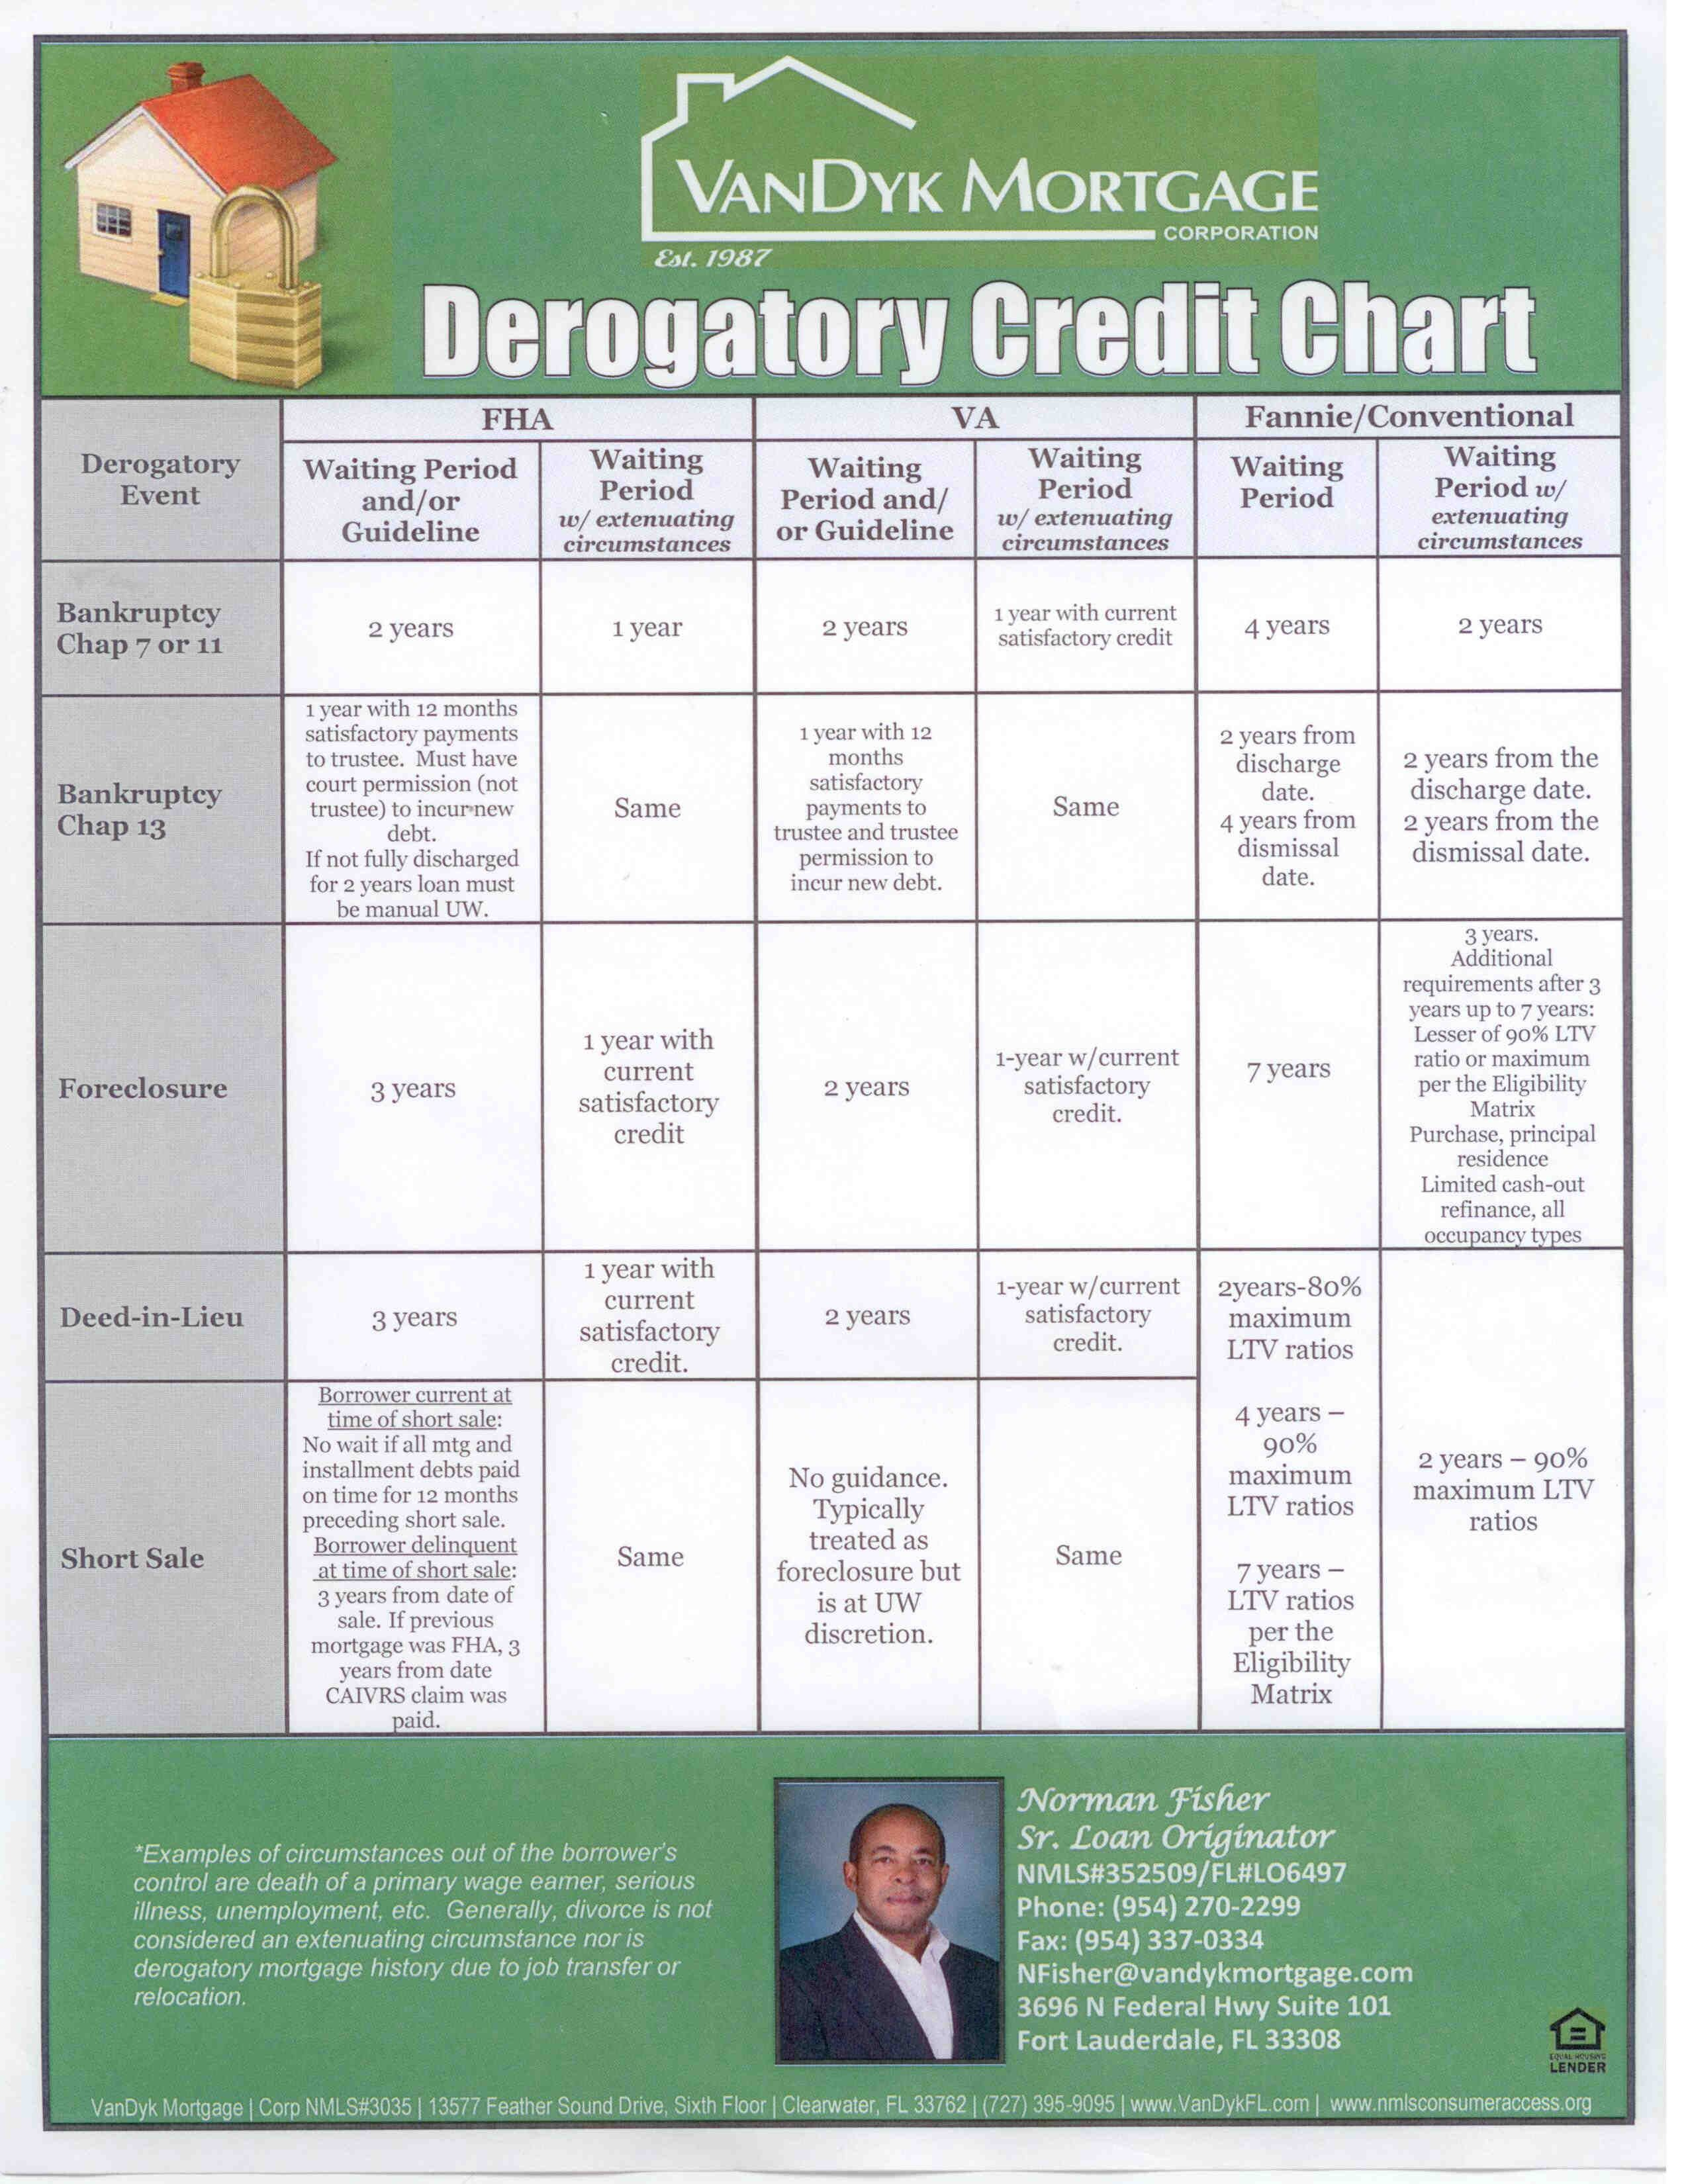 Derogatory Credit Chart - What It May Mean For You!